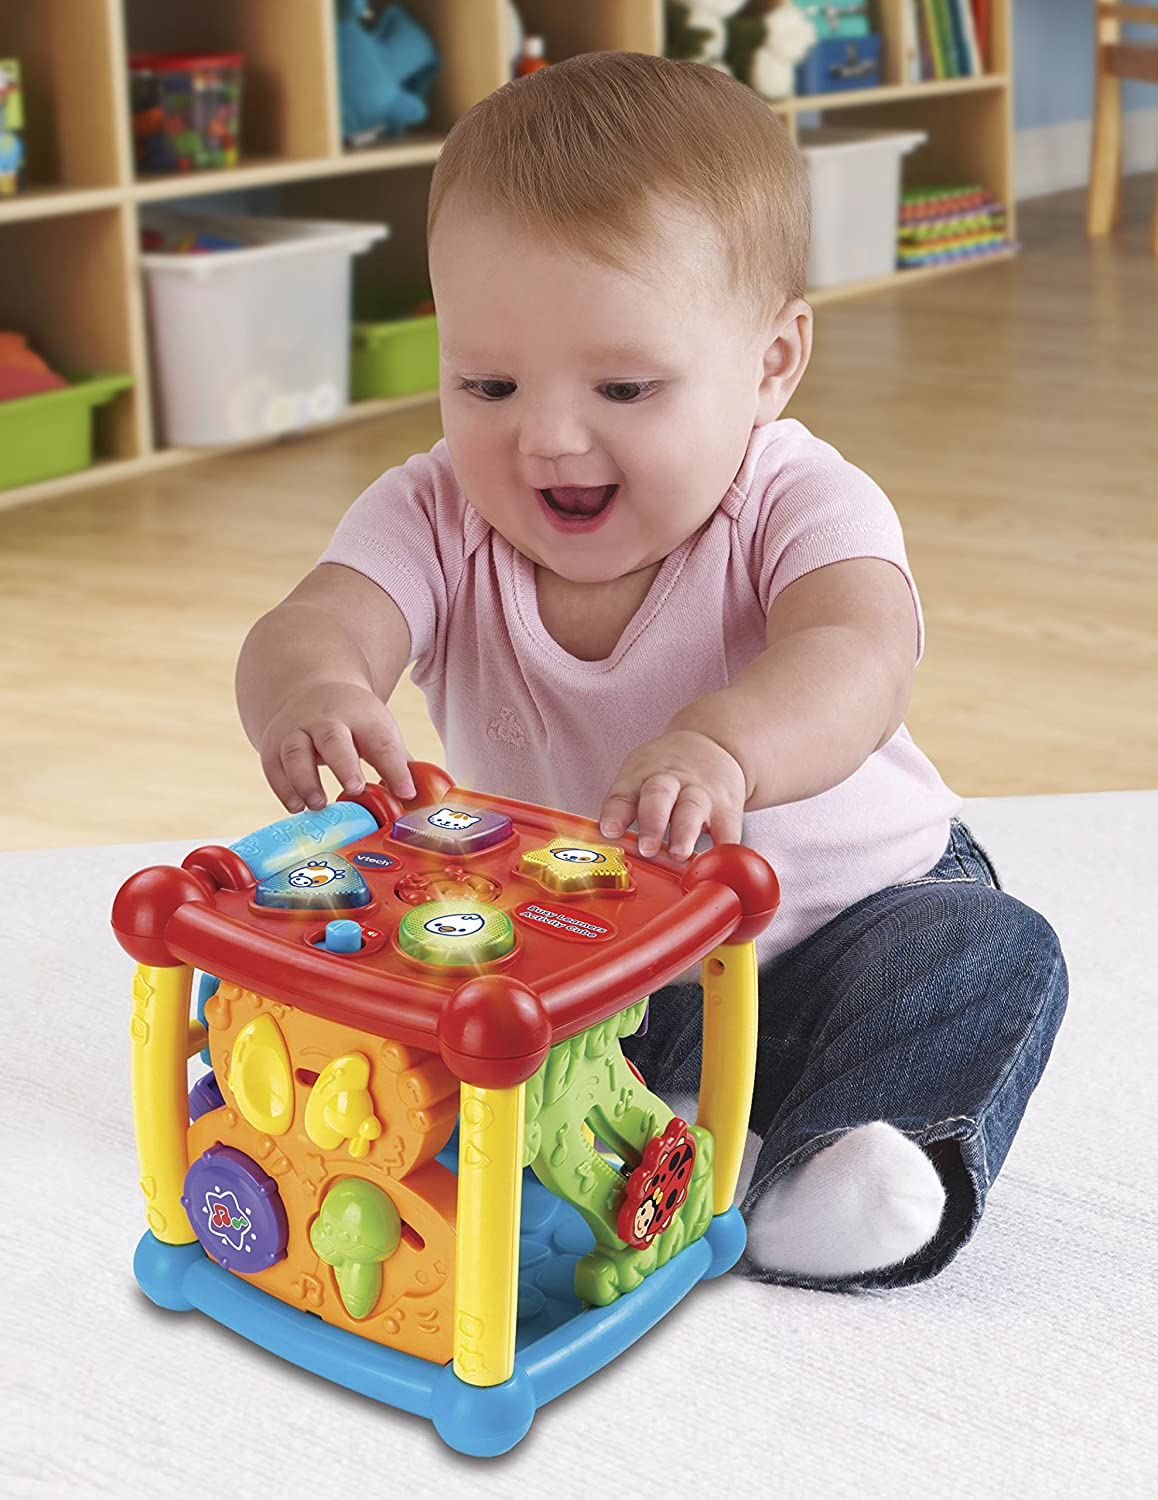 Toys For Active Toddlers : Vtech baby activity center cube kids learning toys animal